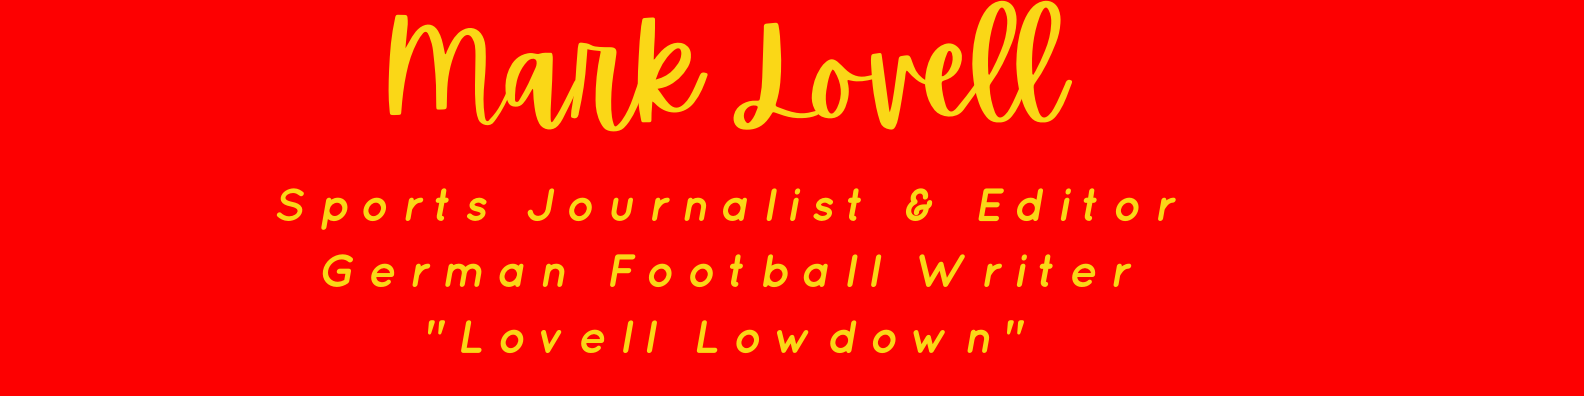 Mark Lovell - UEFA Accredited Journalist